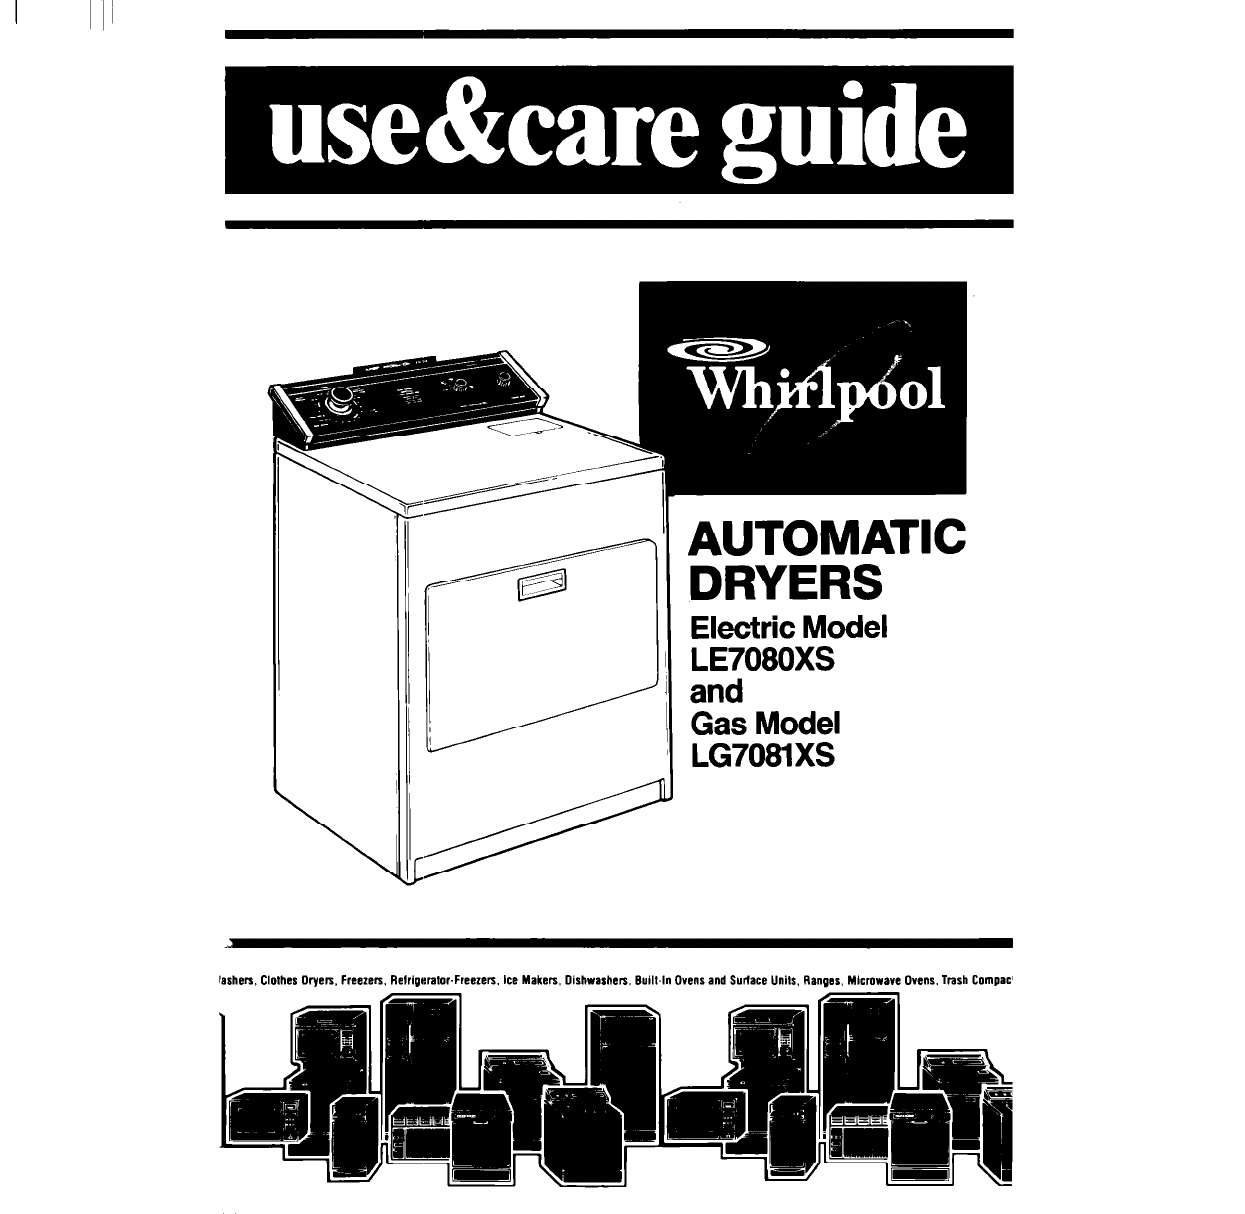 Whirlpool Cabrio Dryer Disassembly Manual Guide